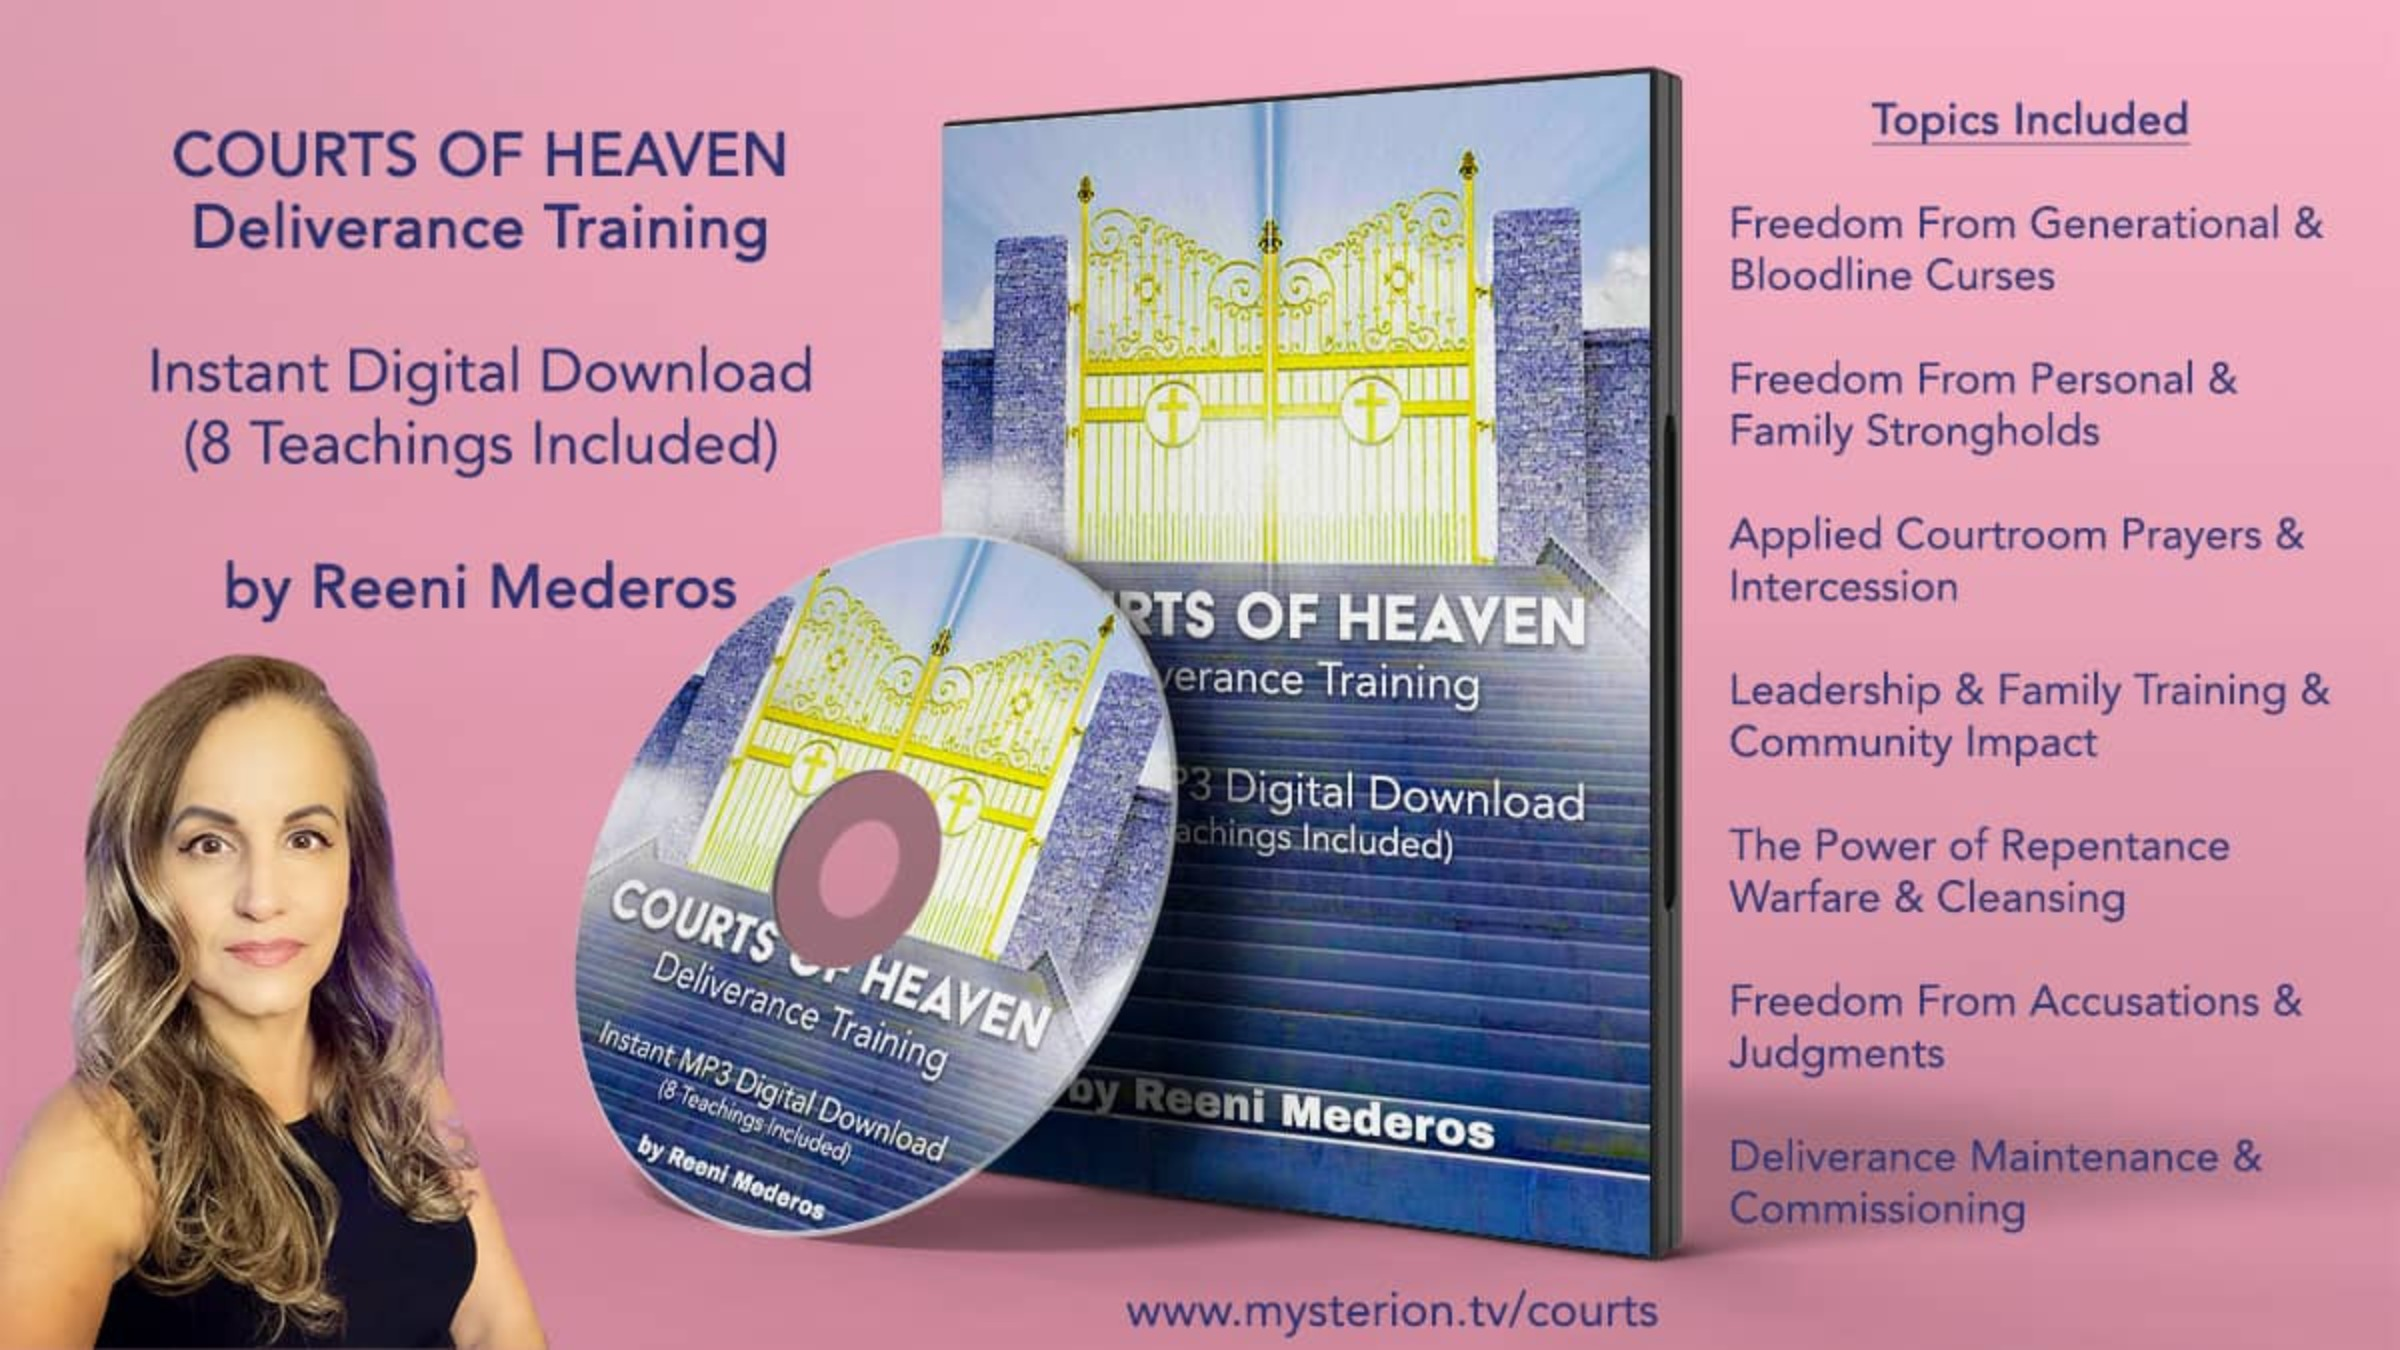 Courts of Heaven Deliverance Training Series - INSTANT DIGITAL DOWNLOAD